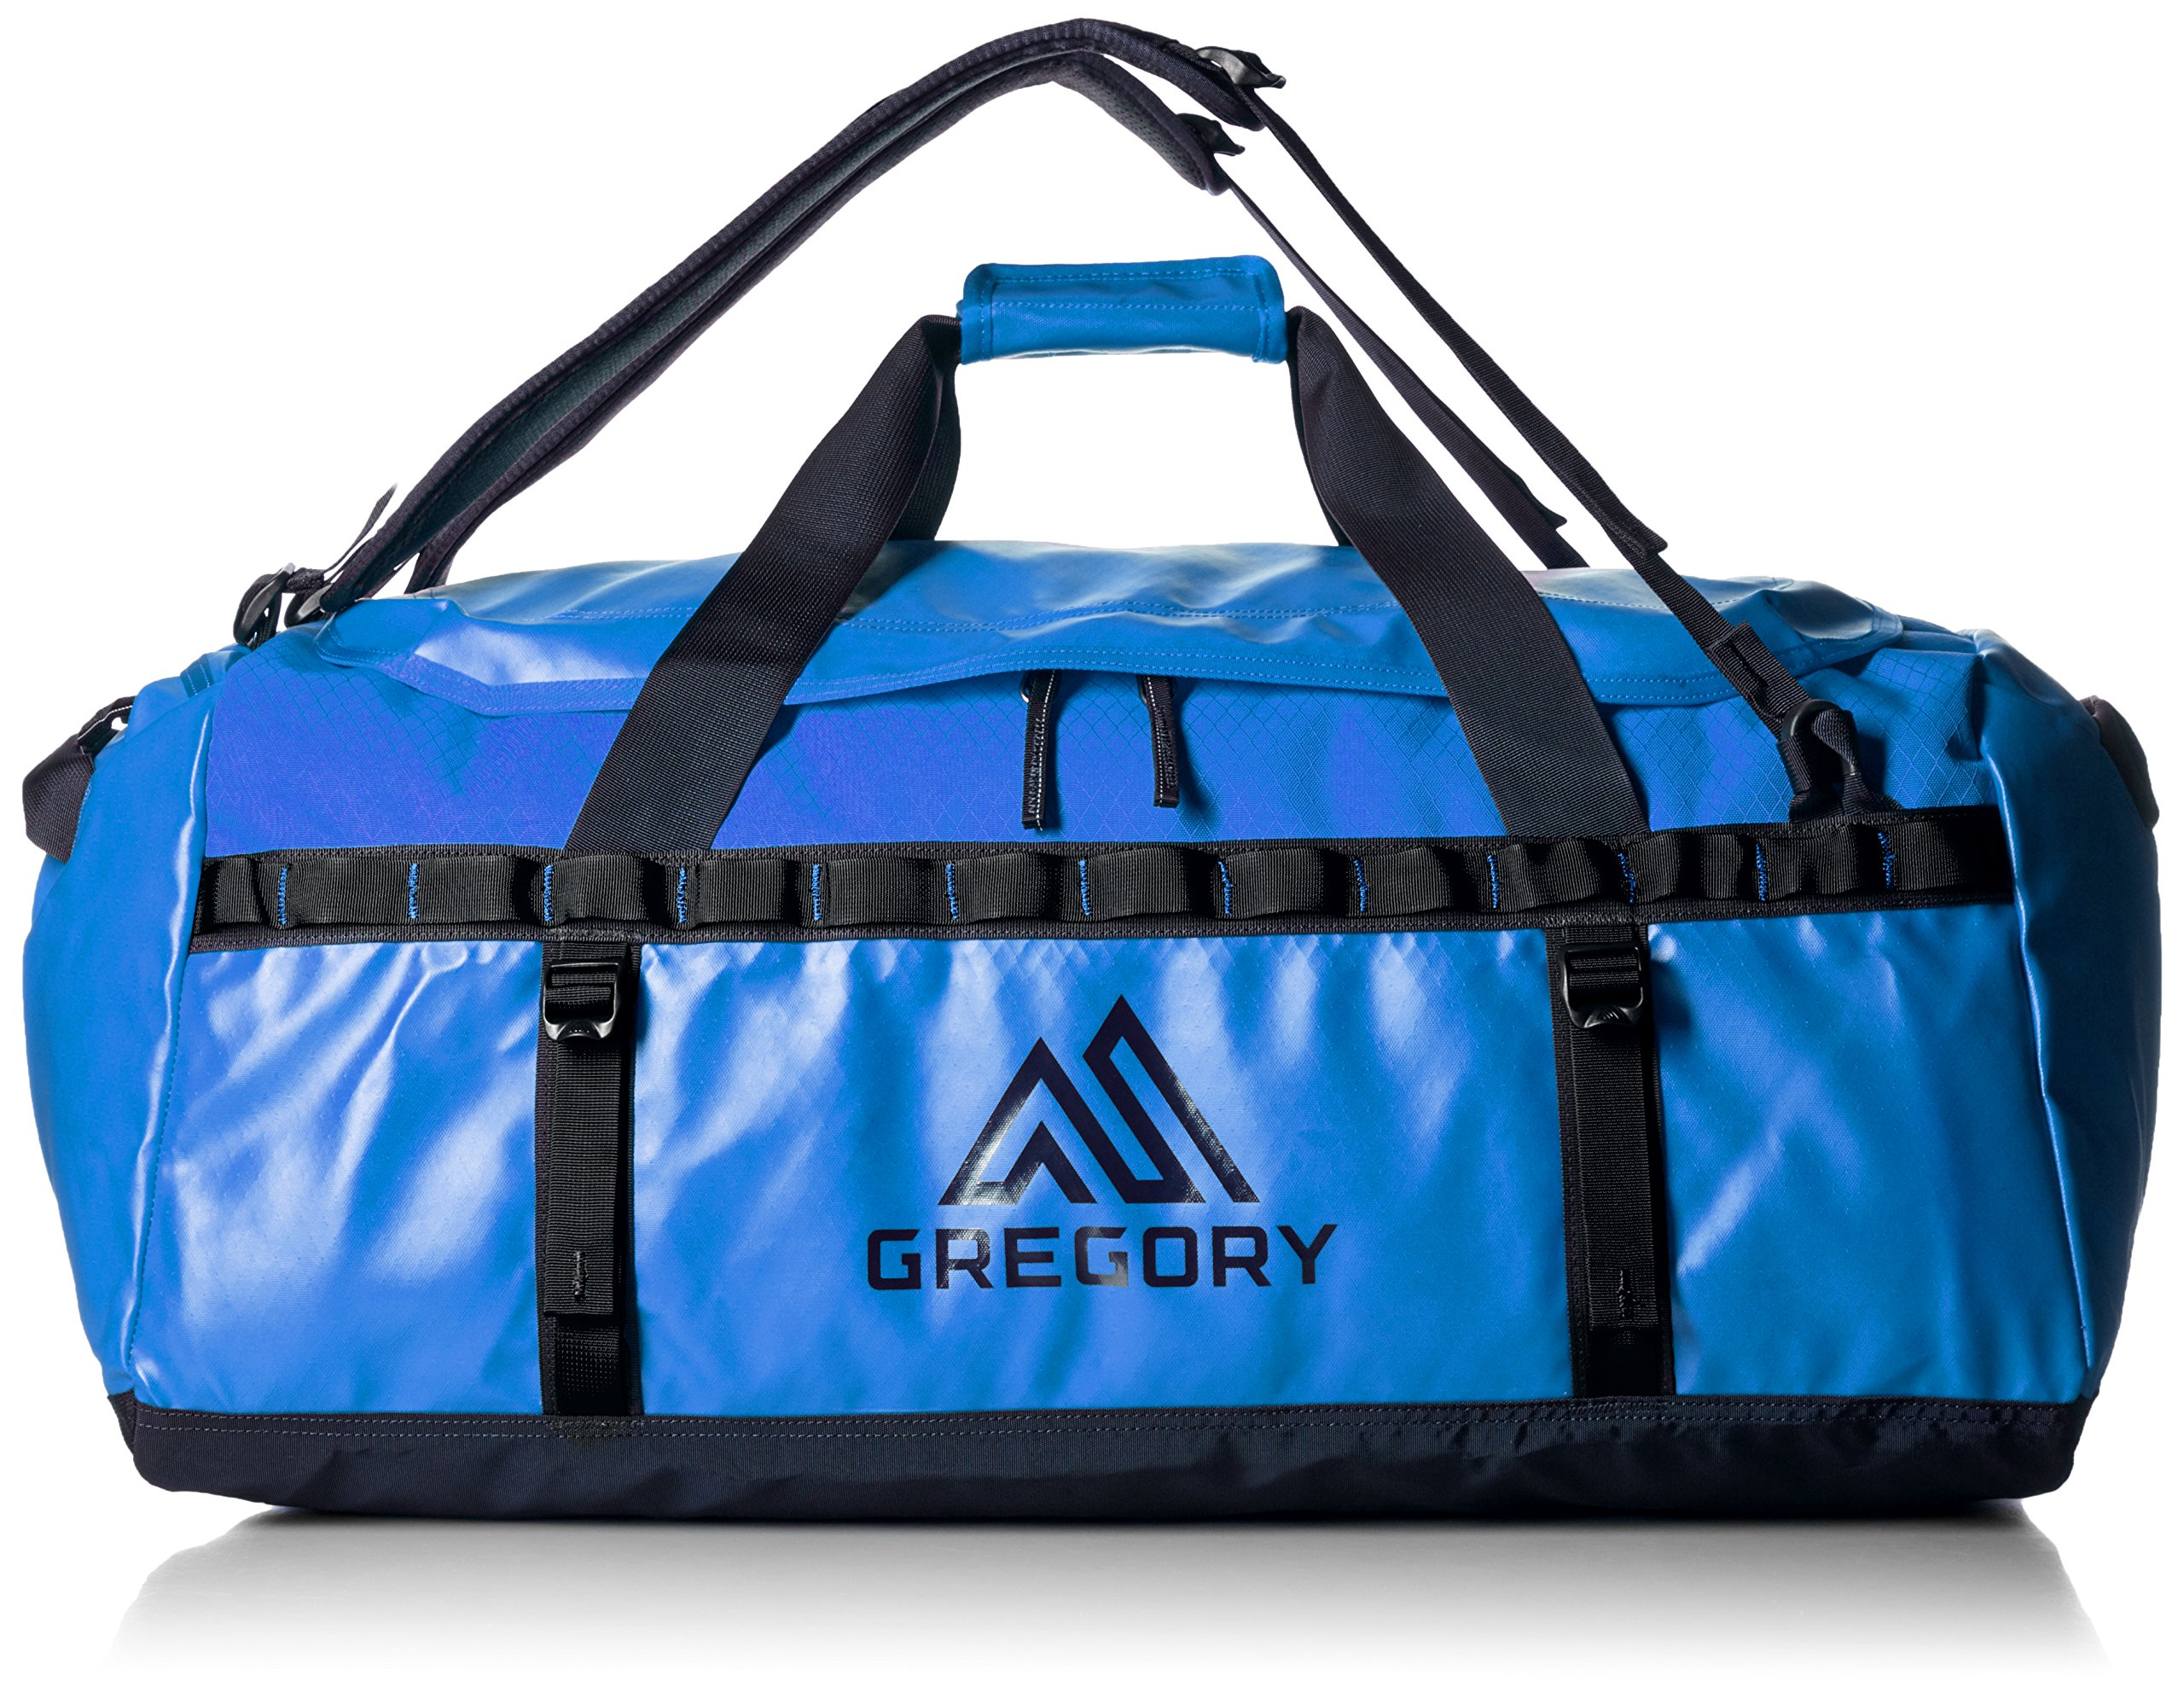 Gregory Mountain Products Alpaca 120 Liter Duffel Bag, Marine Blue, One Size